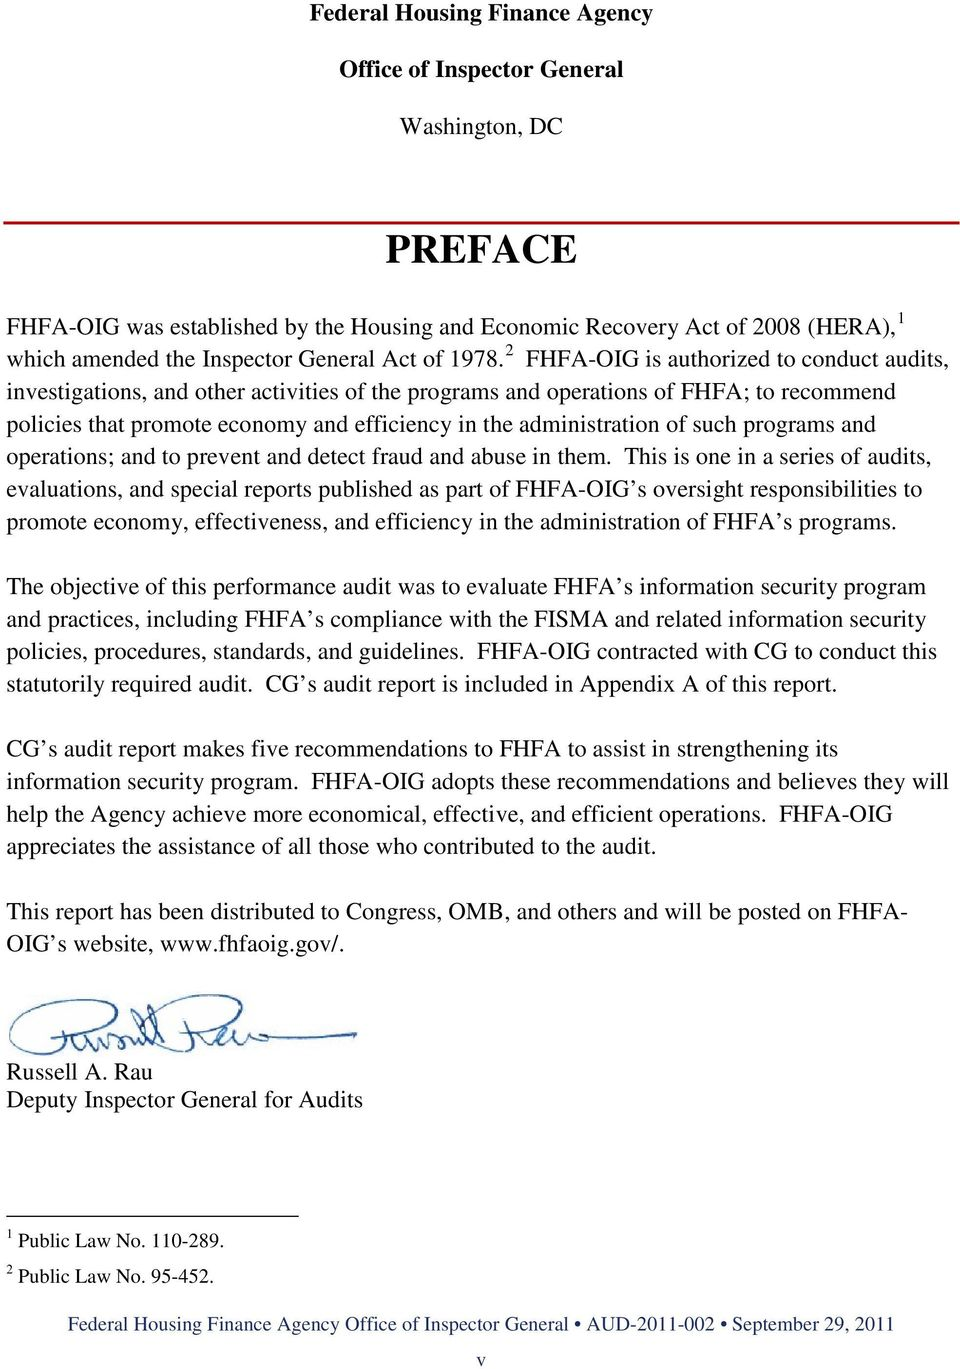 2 FHFA-OIG is authorized to conduct audits, investigations, and other activities of the programs and operations of FHFA; to recommend policies that promote economy and efficiency in the